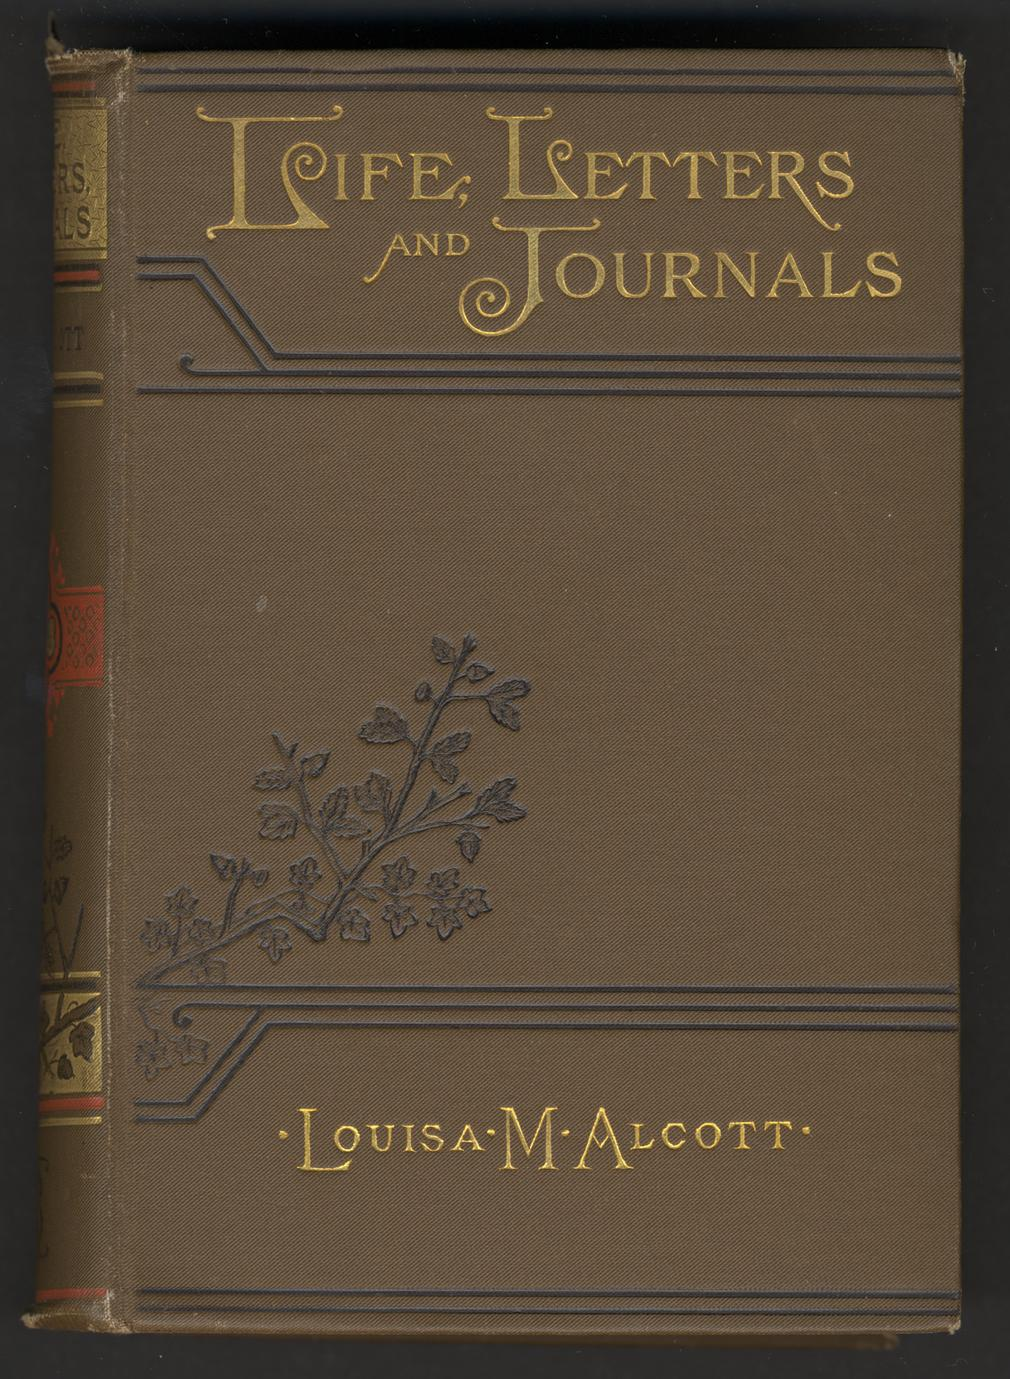 Louisa May Alcott : her life, letters, and journals (1 of 3)